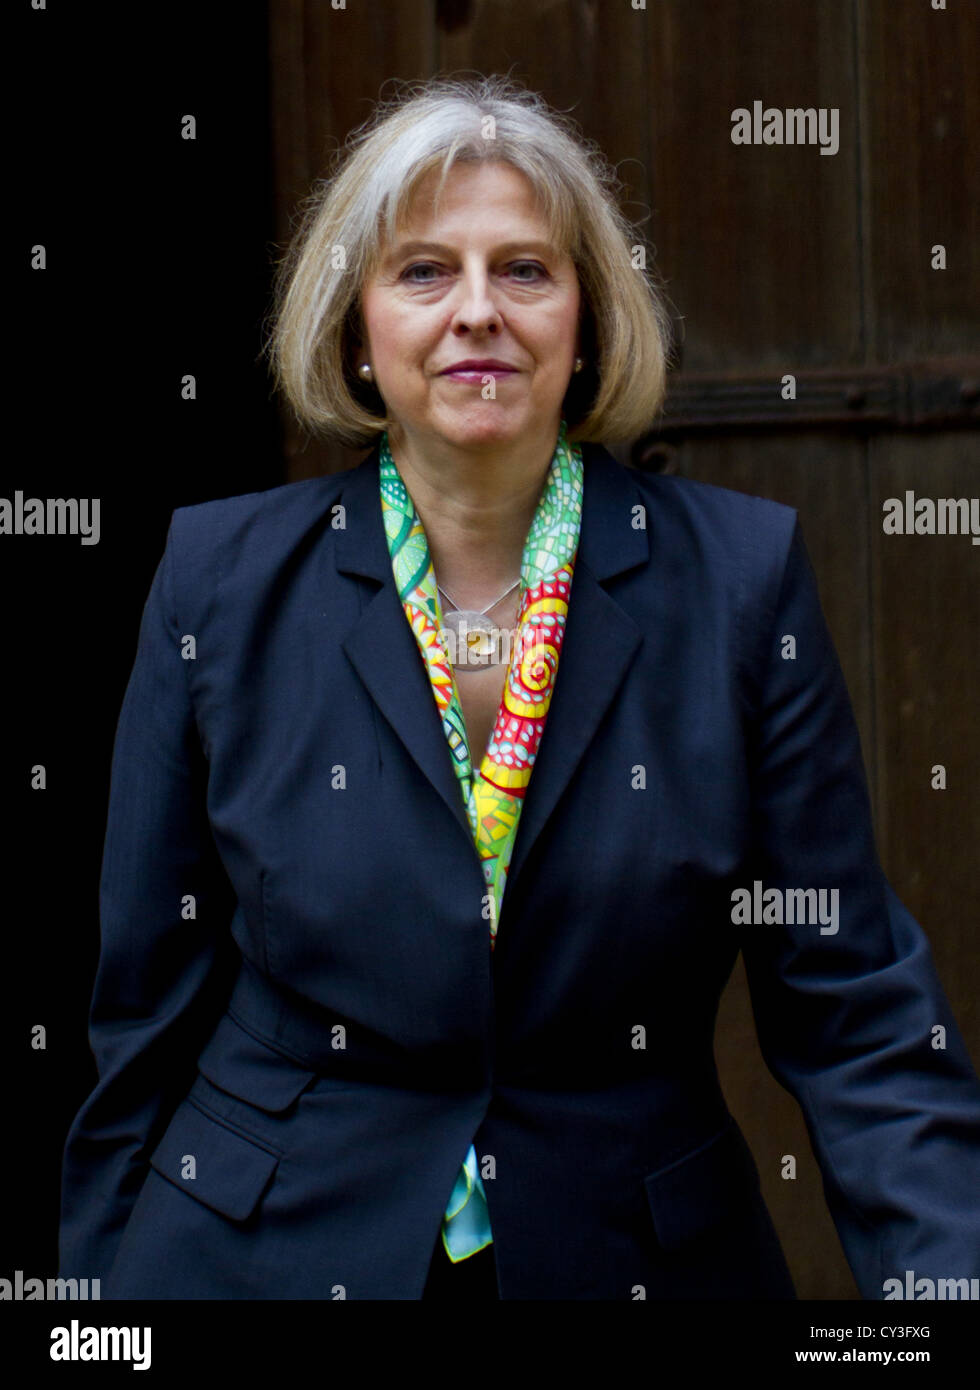 London, UK. 29th 2012. (Pictured) Home Secretary Theresa May arrives at the Leveson Inquiry at the Royal Court of - Stock Image